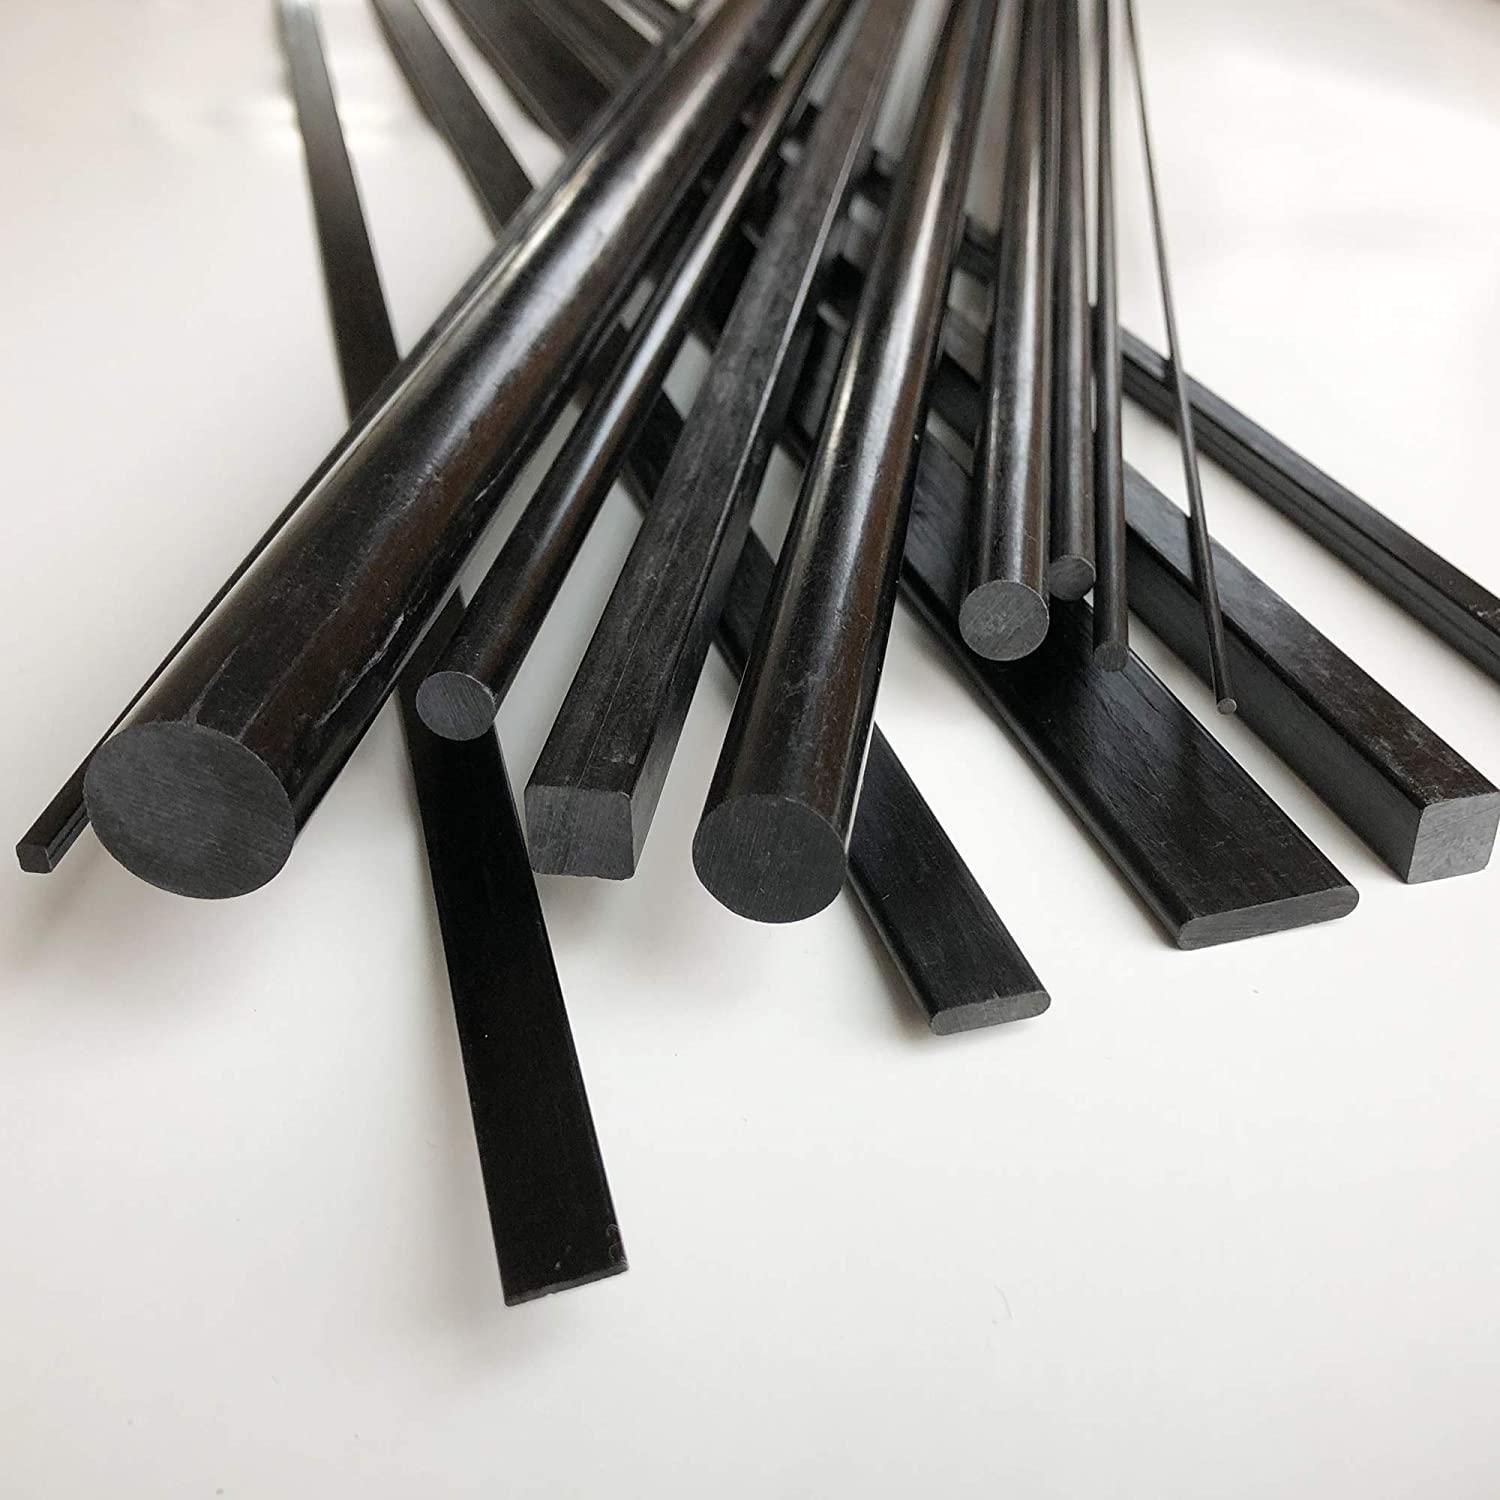 Radio Controlled Vehicles Used for Drones 2mm X 1000mm Projects requiring high Strength to Weight Components. 100/% Pultruded high Strength Carbon Fiber PULTRUDED-Square Carbon Fiber Rod 1